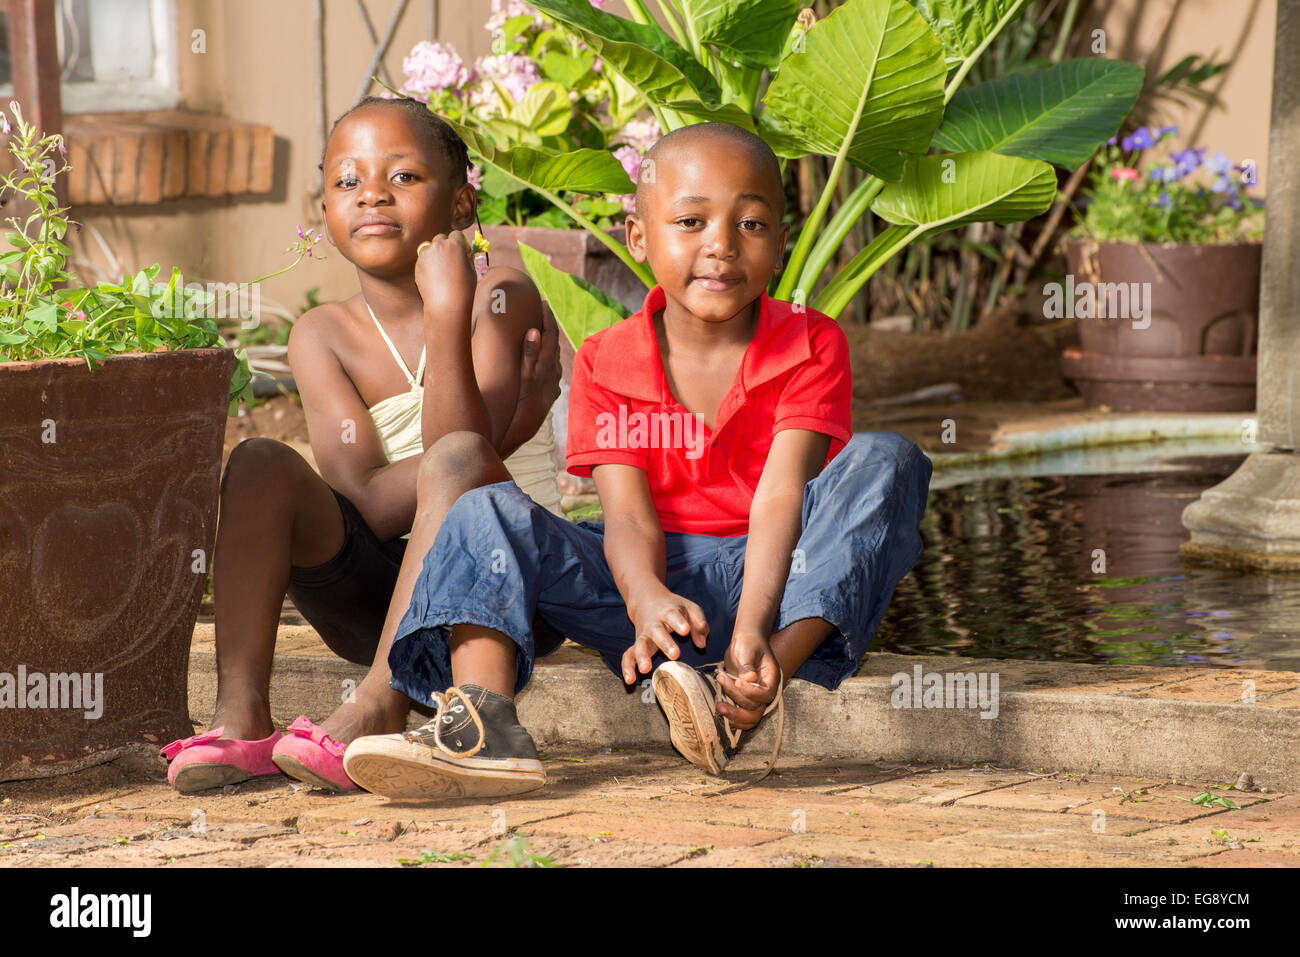 Boy ties his shoe laces after he and his twin sister played at the pond by their house. - Stock Image